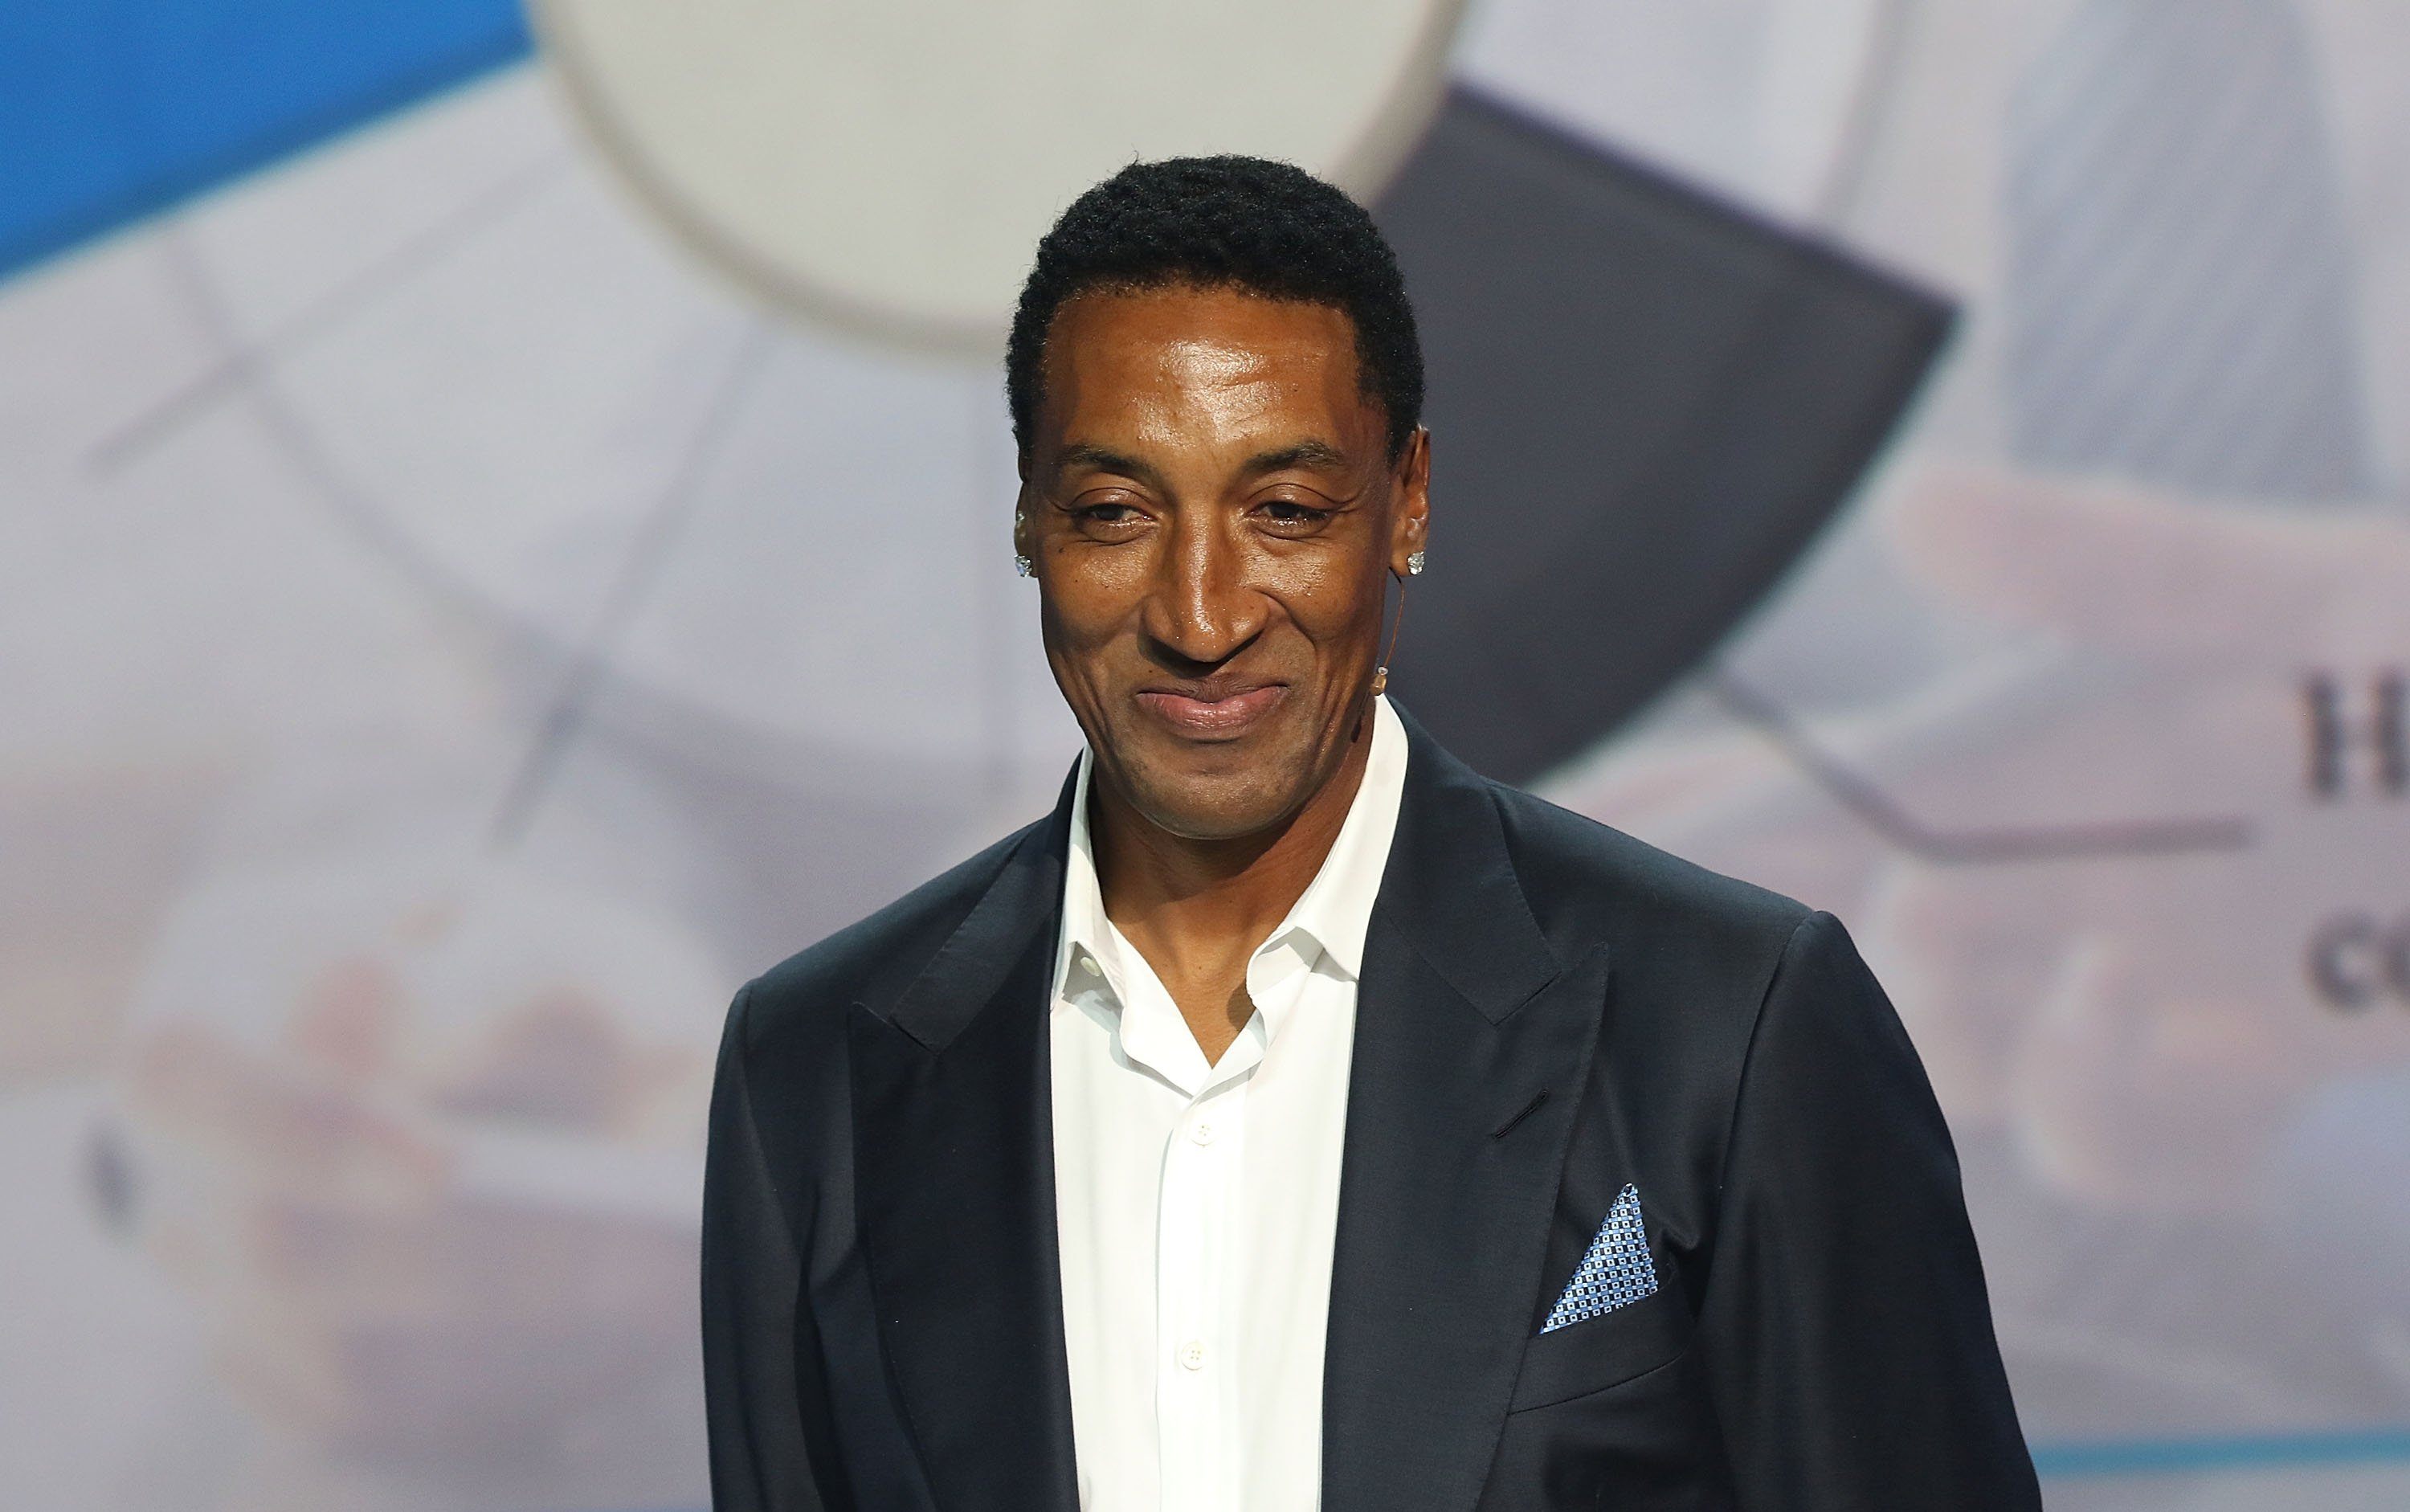 Scottie Pippen Attends Market America Conference 2016 at American Airlines Arena on February 4, 2016 in Miami, Florida. | Photo: GettyImages